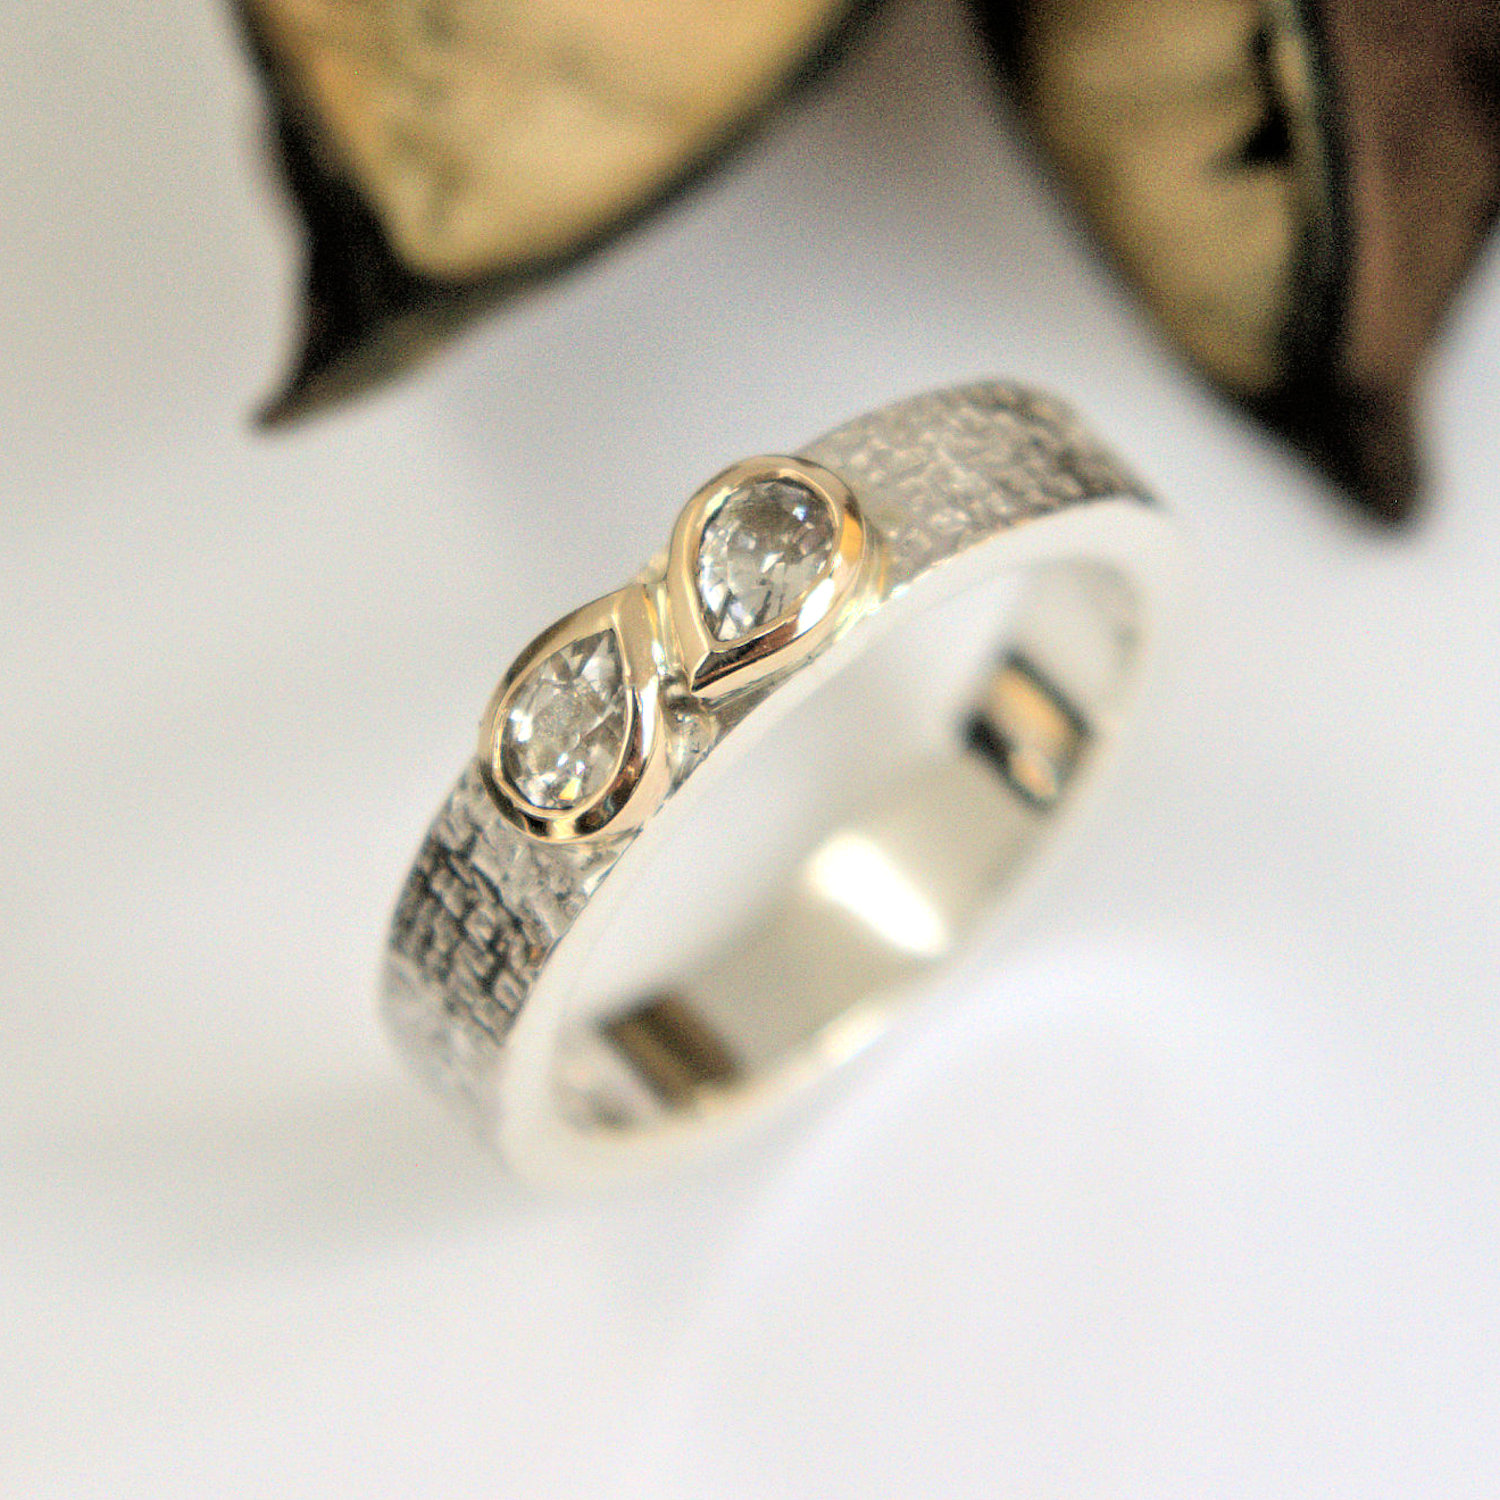 White Sapphire gold and silver ring